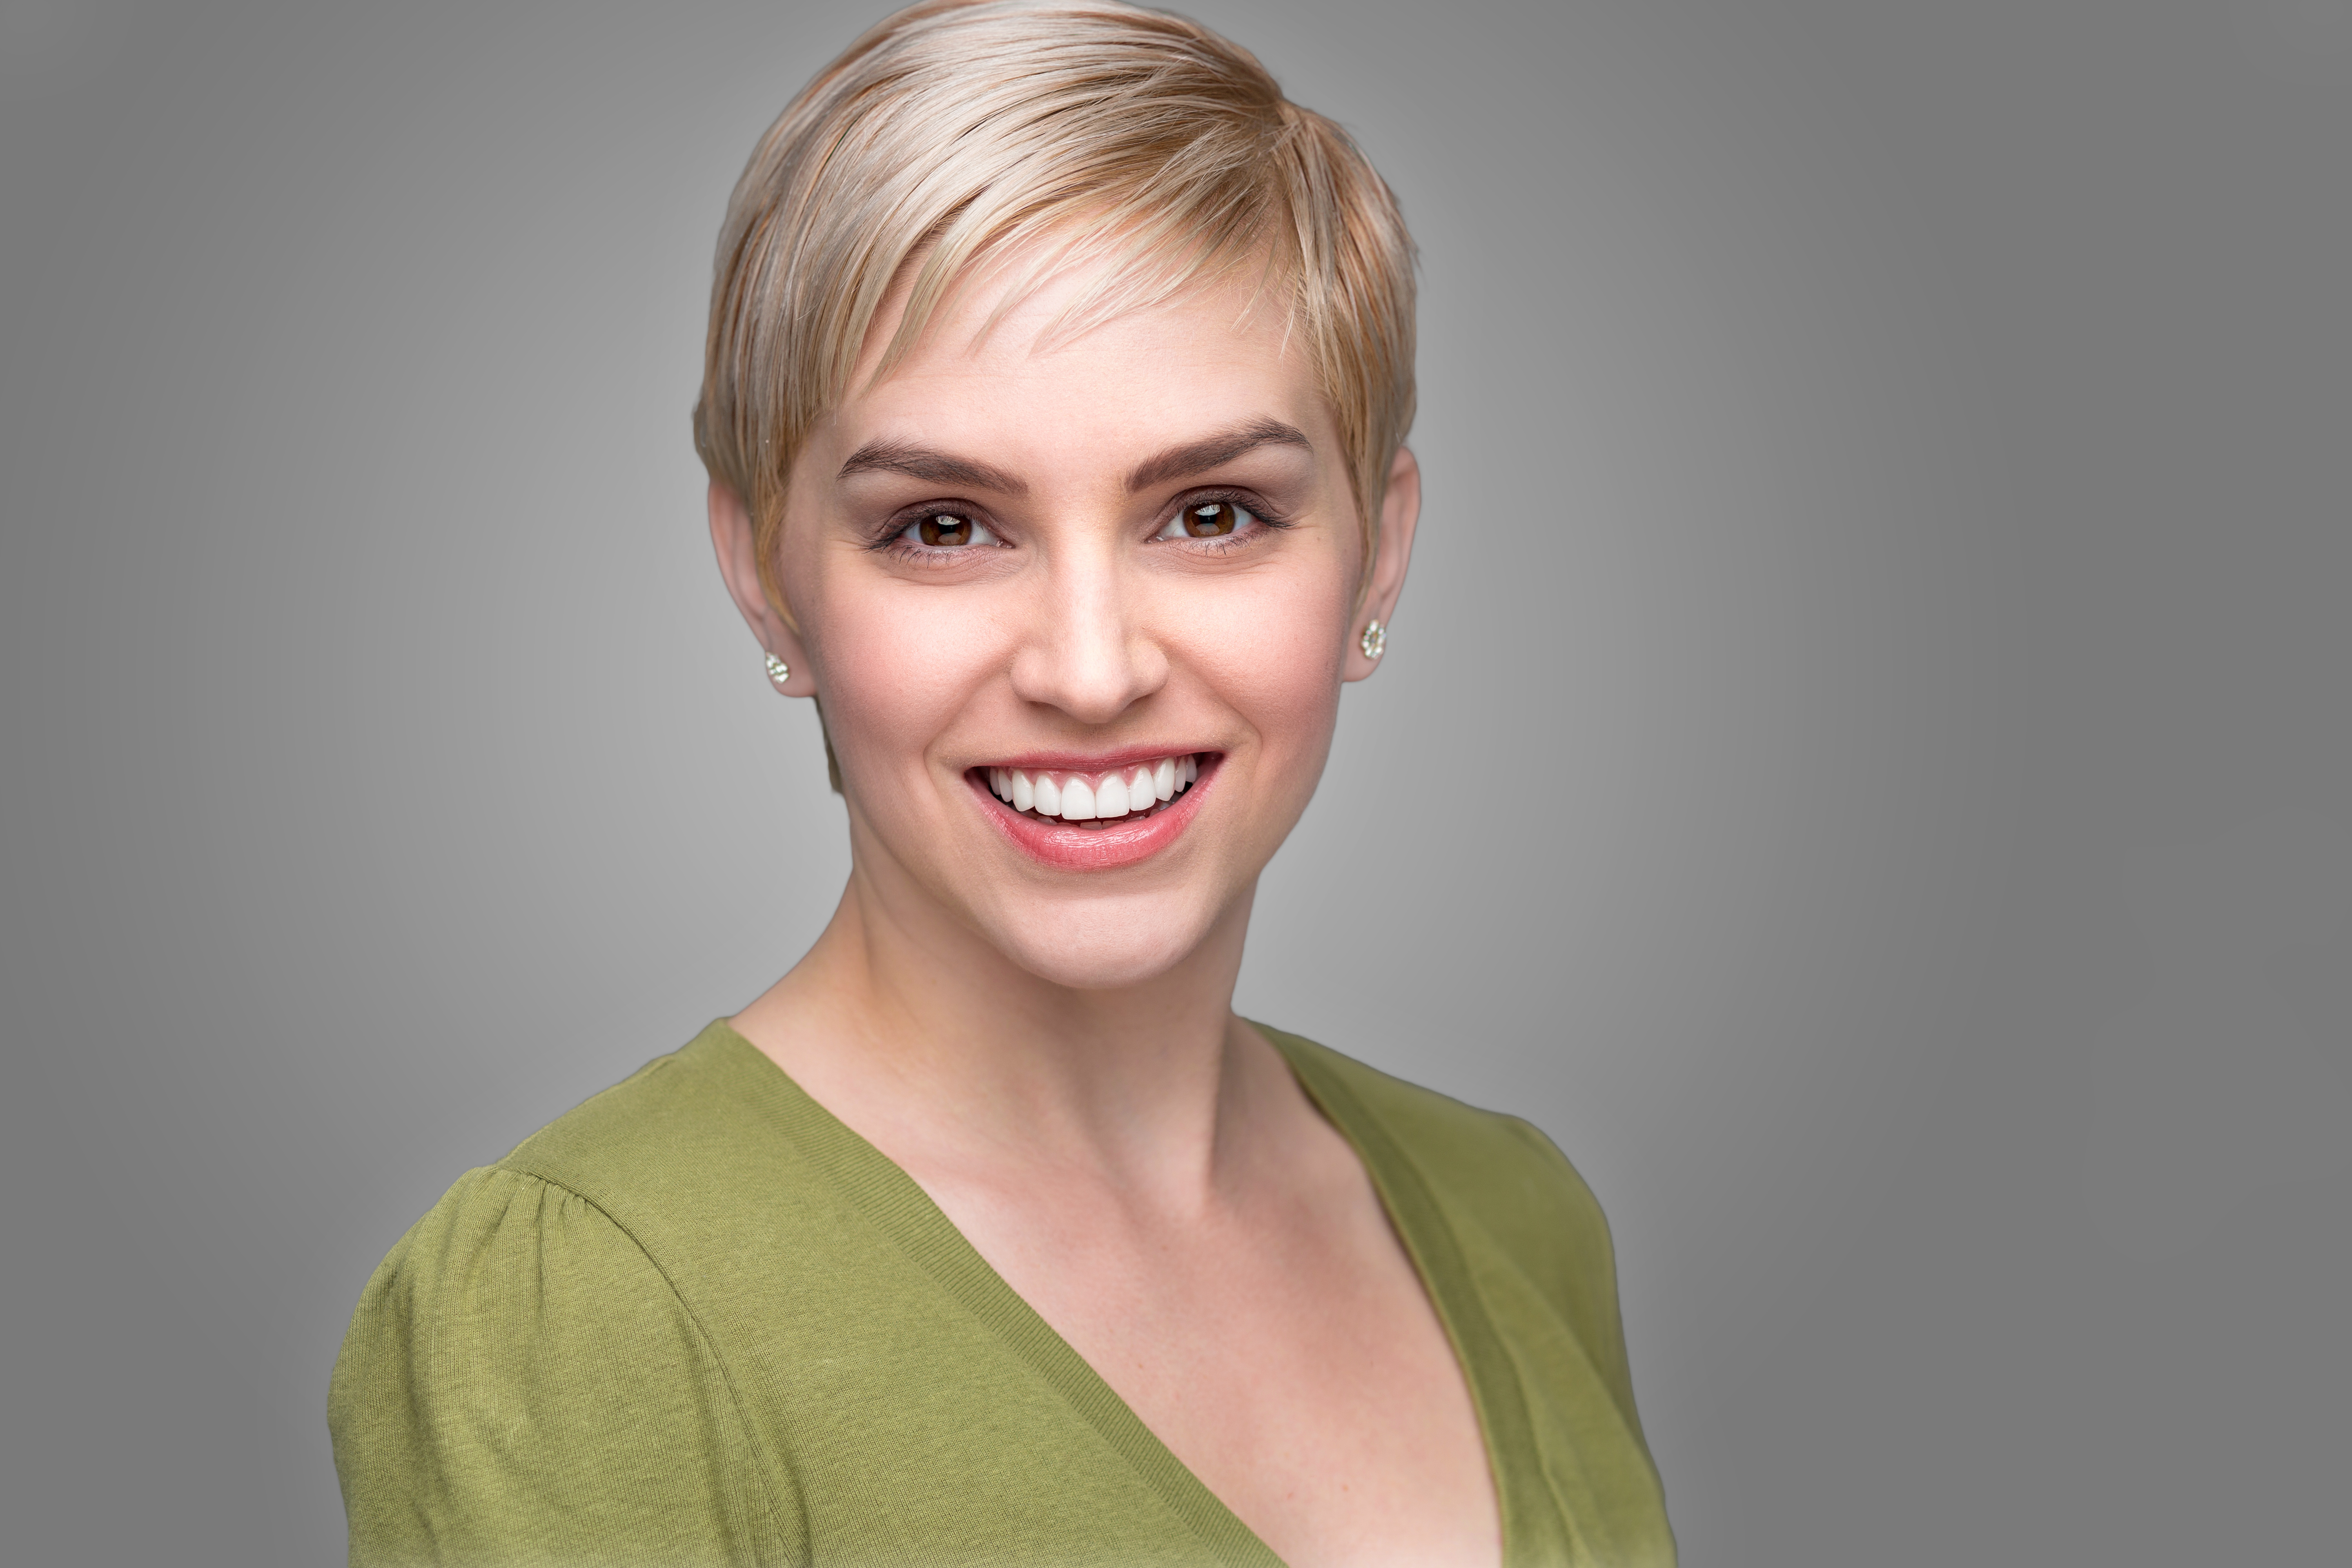 woman with a short blonde pixie cut.jpg